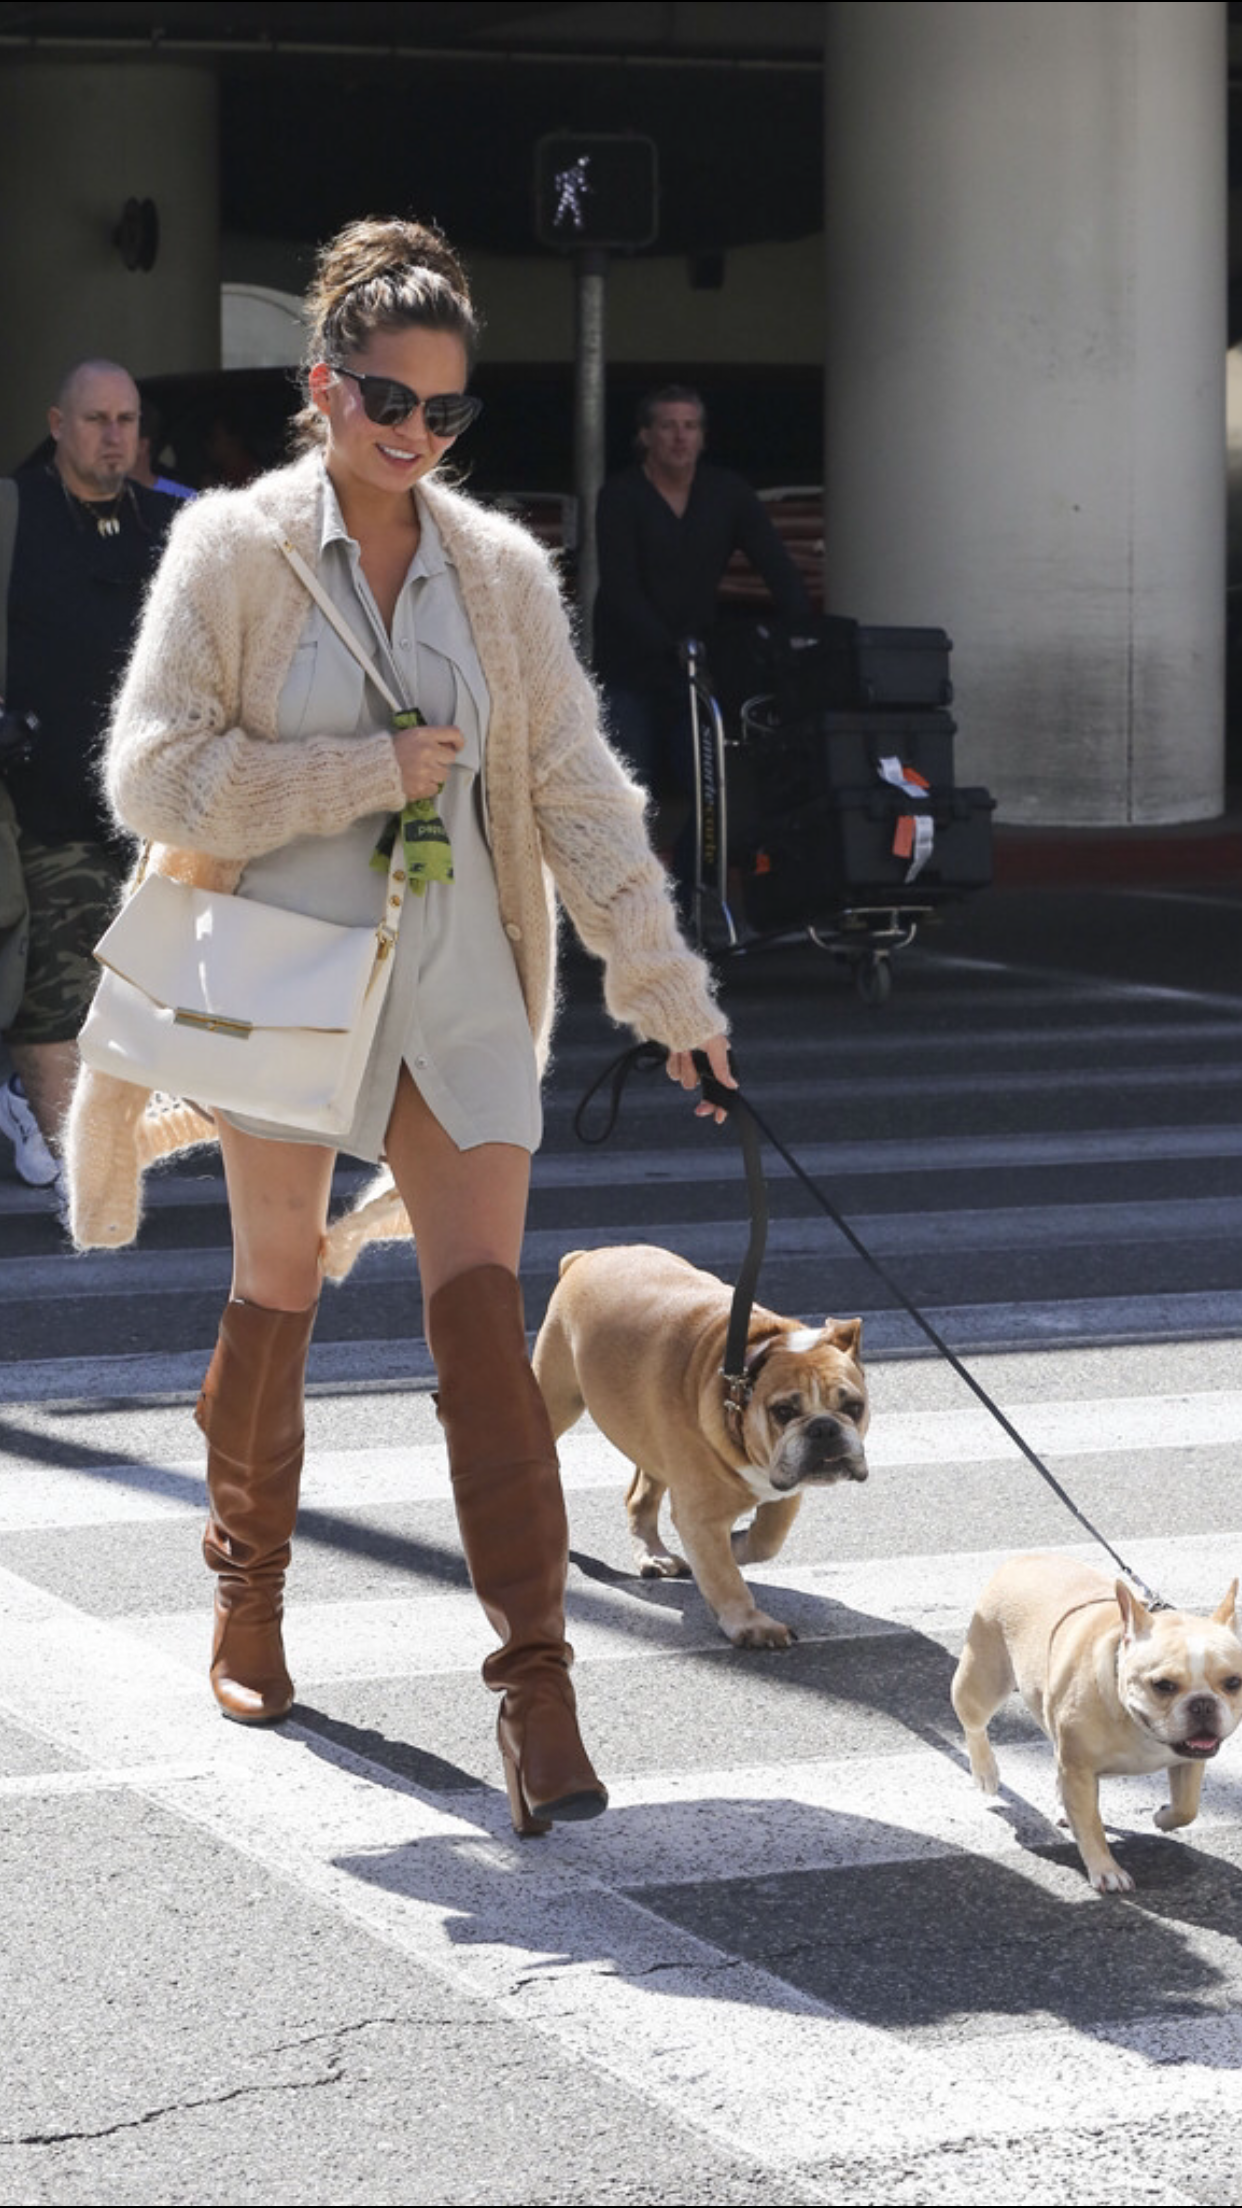 Watch Chrissy Teigens Guide To Walking Your Dog In Style video